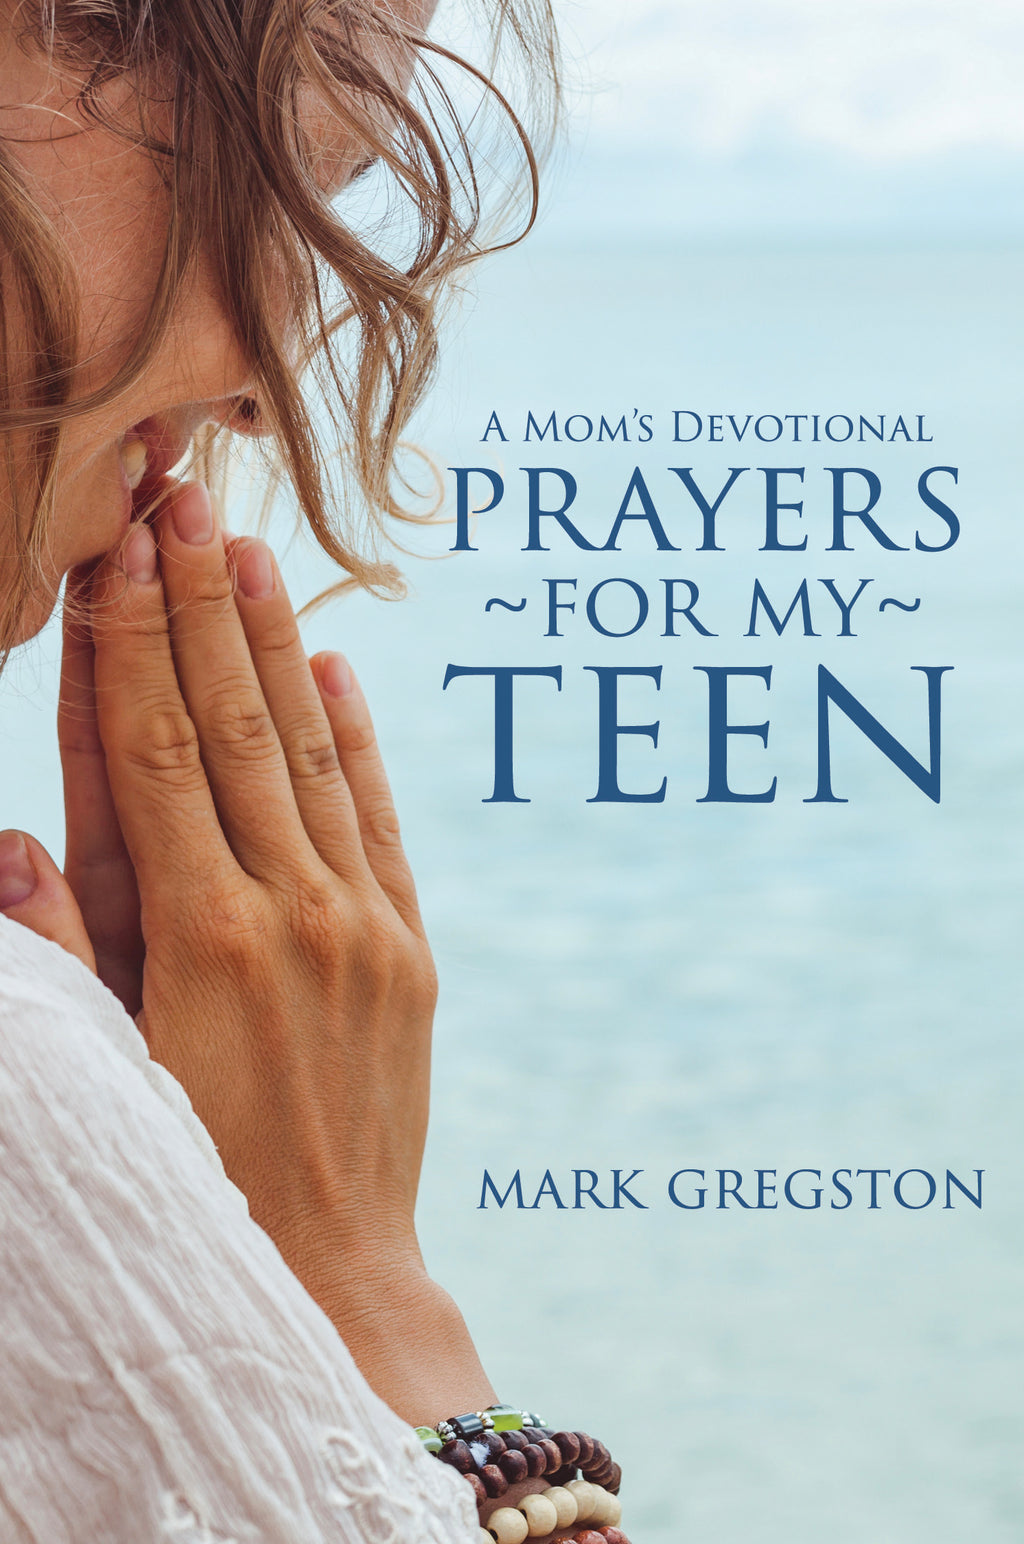 A Mom's Devotional: Prayers for My Teen